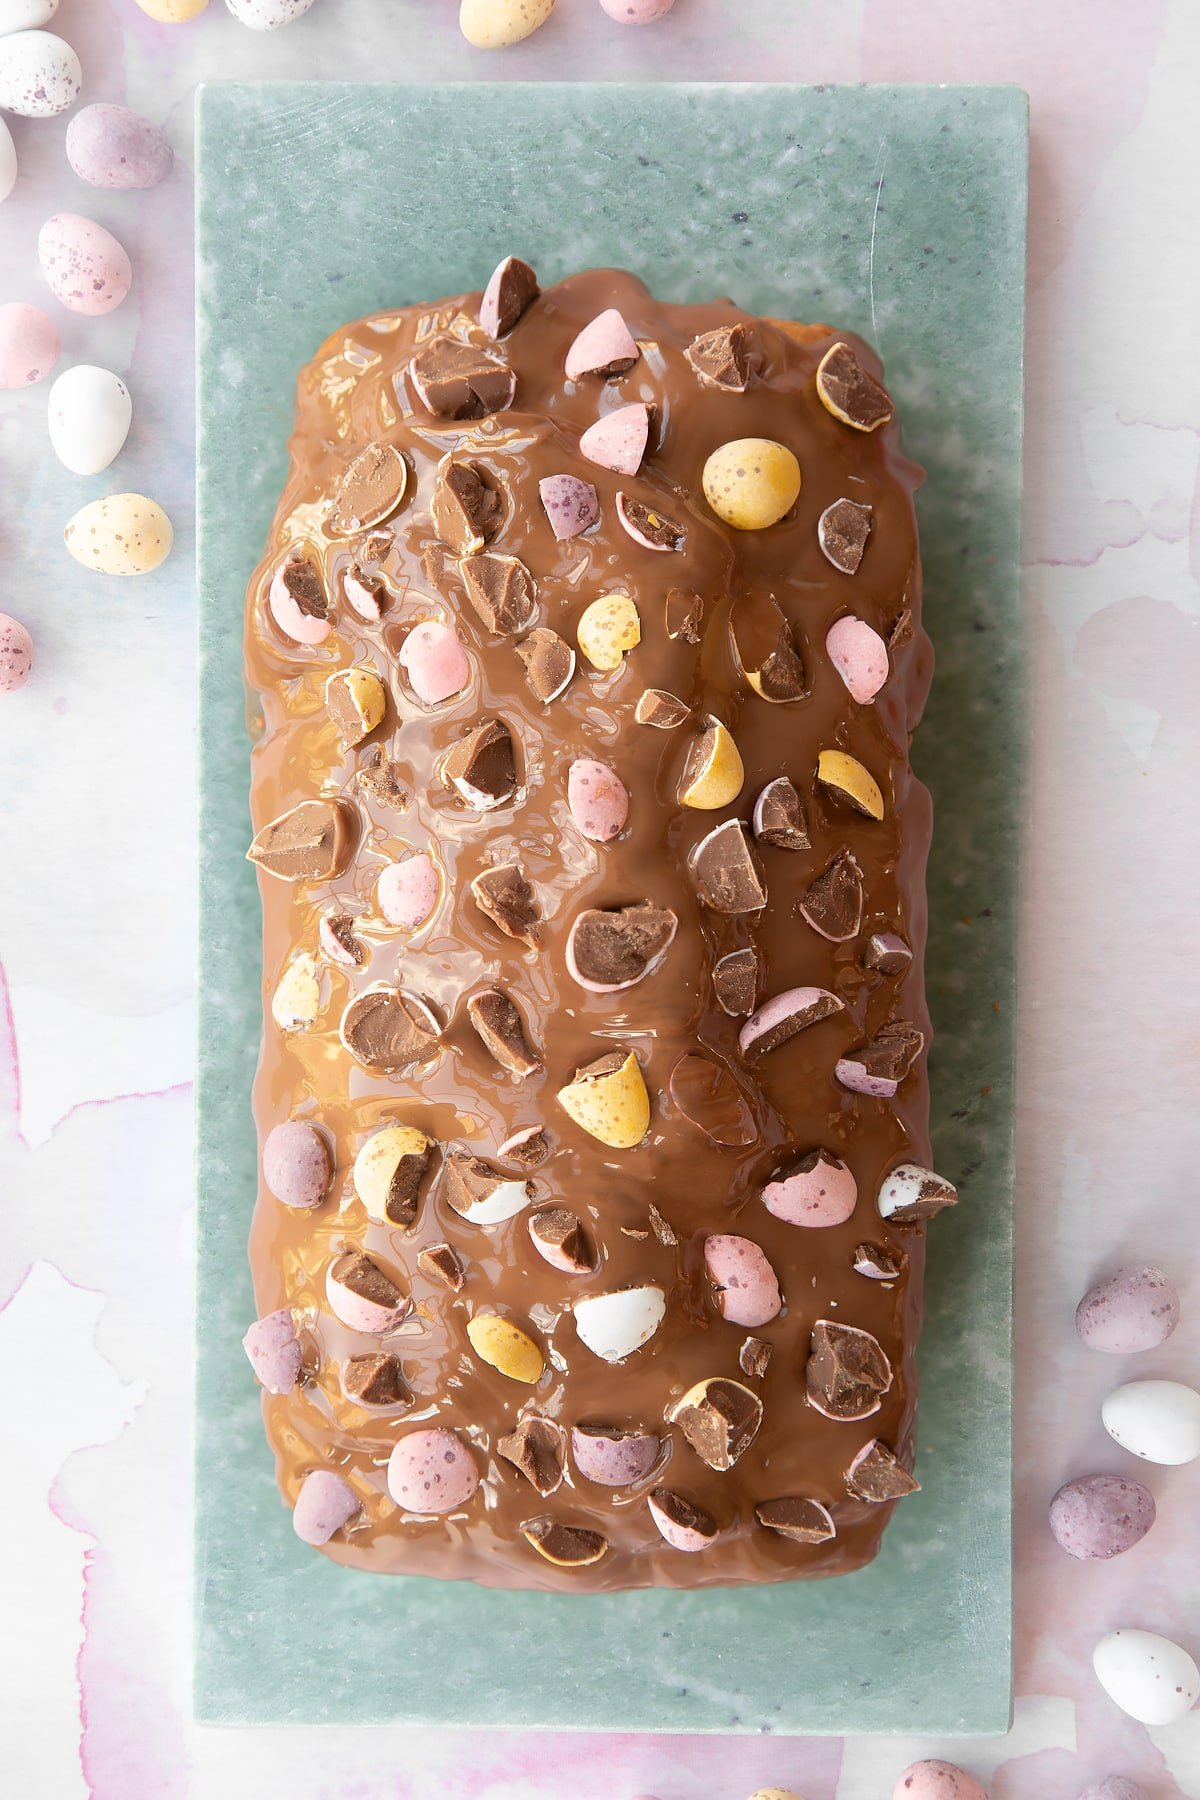 Easter banana bread decorated with milk chocolate and chopped Mini Eggs on a long grey marble board.